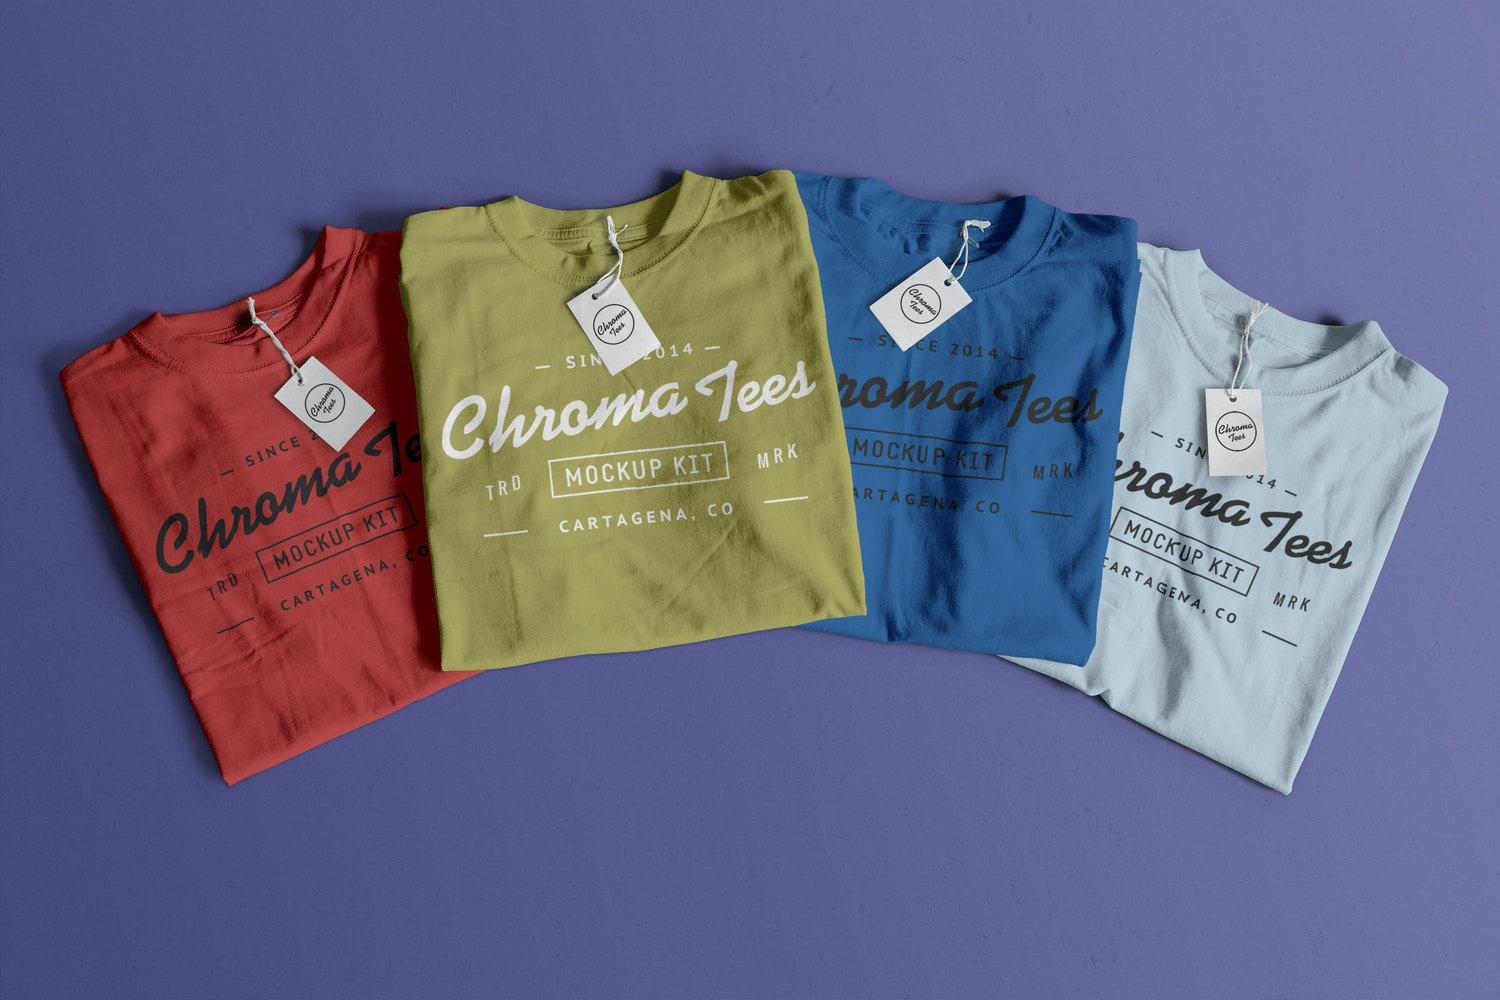 Folded T-Shirts Mockup 03 by Antonio Padilla on Original Mockups